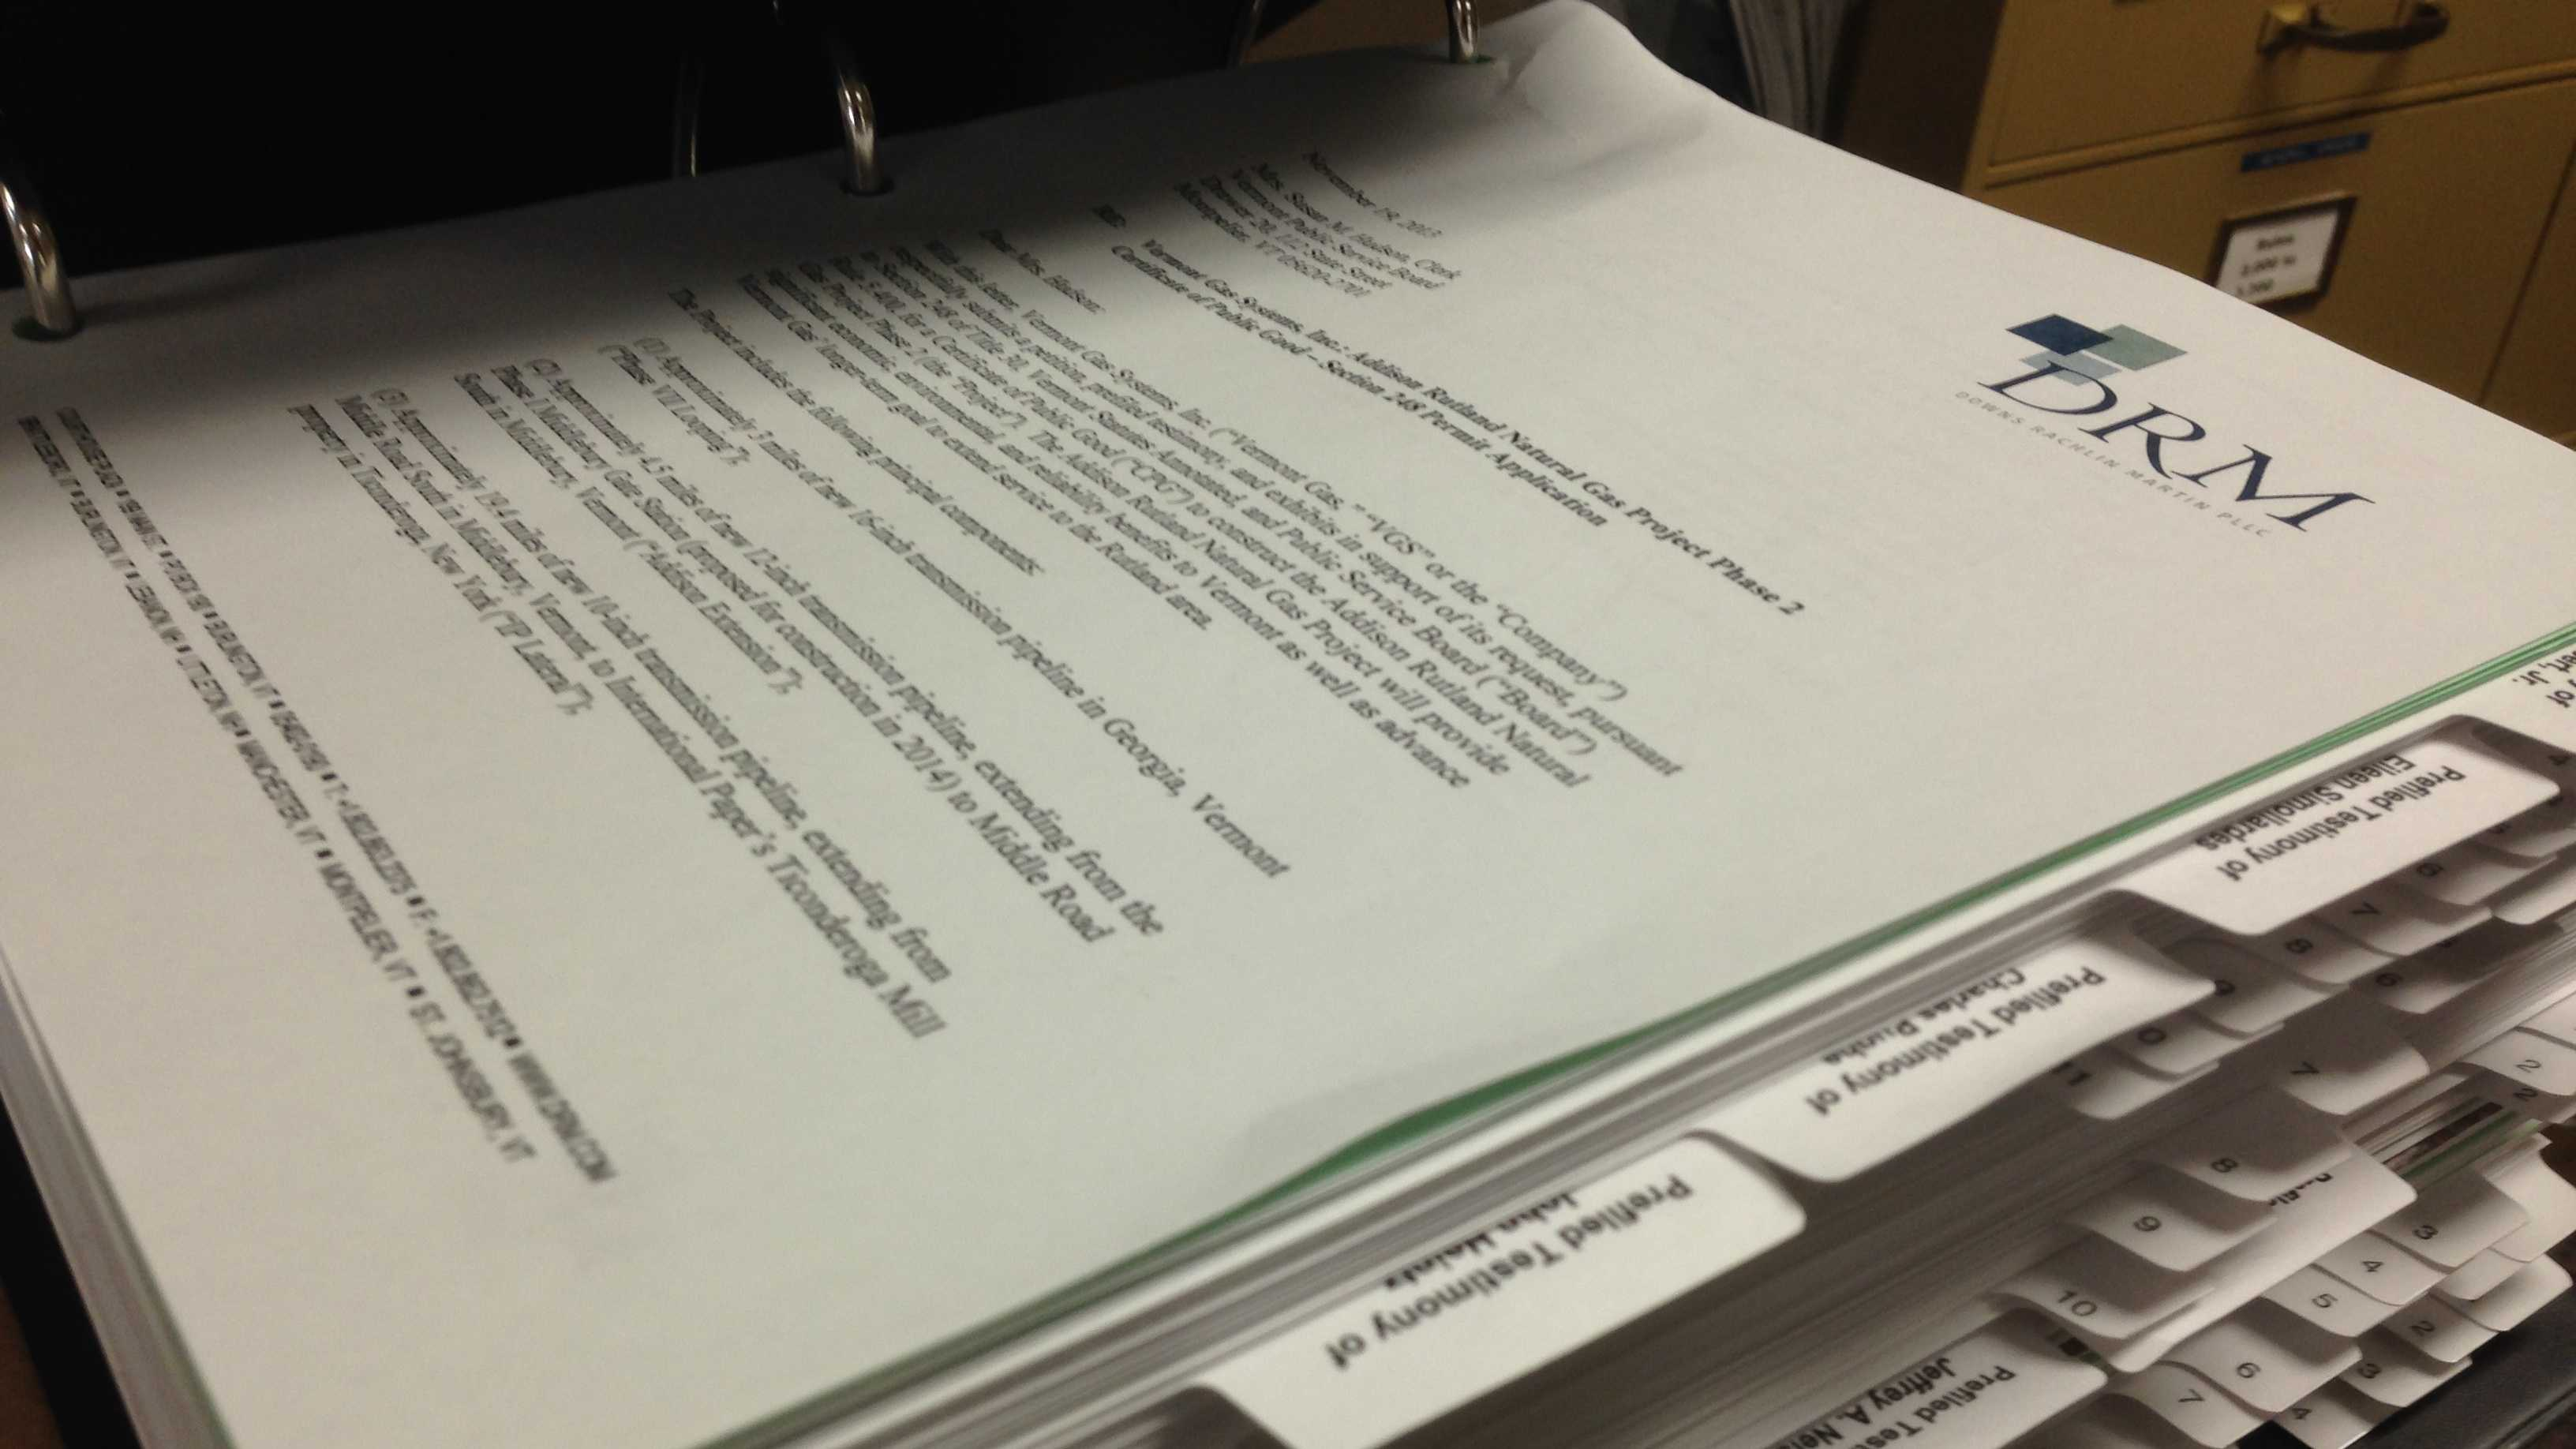 2nd phase of pipeline expansion filed - img